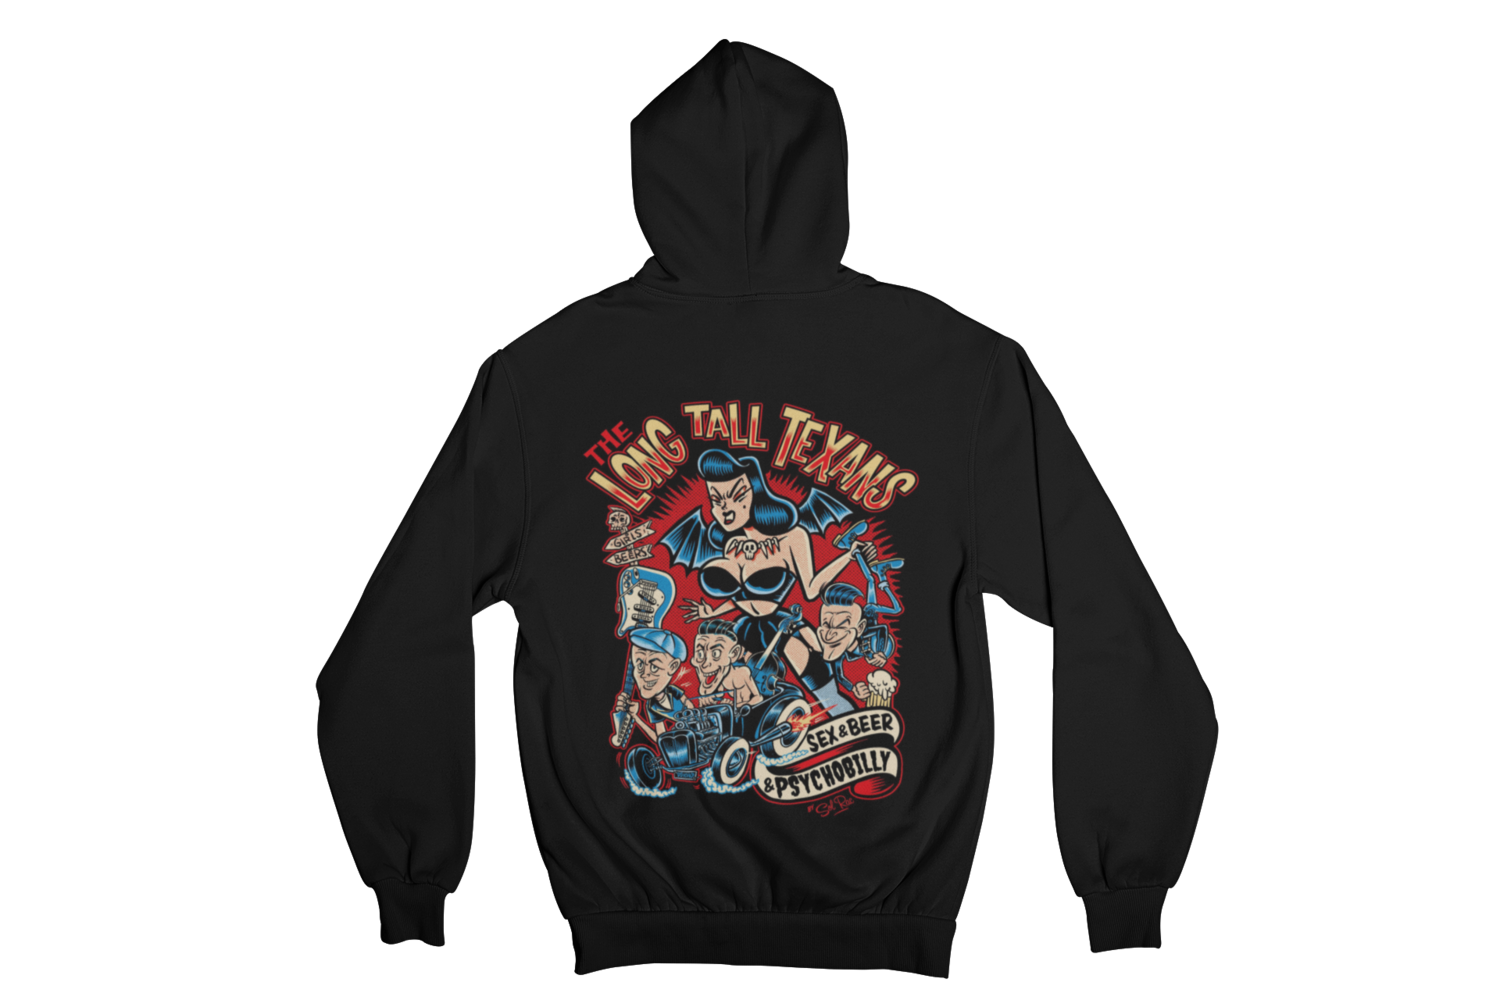 "LONG TALL TEXANS ""SEX & BEER & PSYCHOBILLY"" HOODIE ZIP for WOMEN"